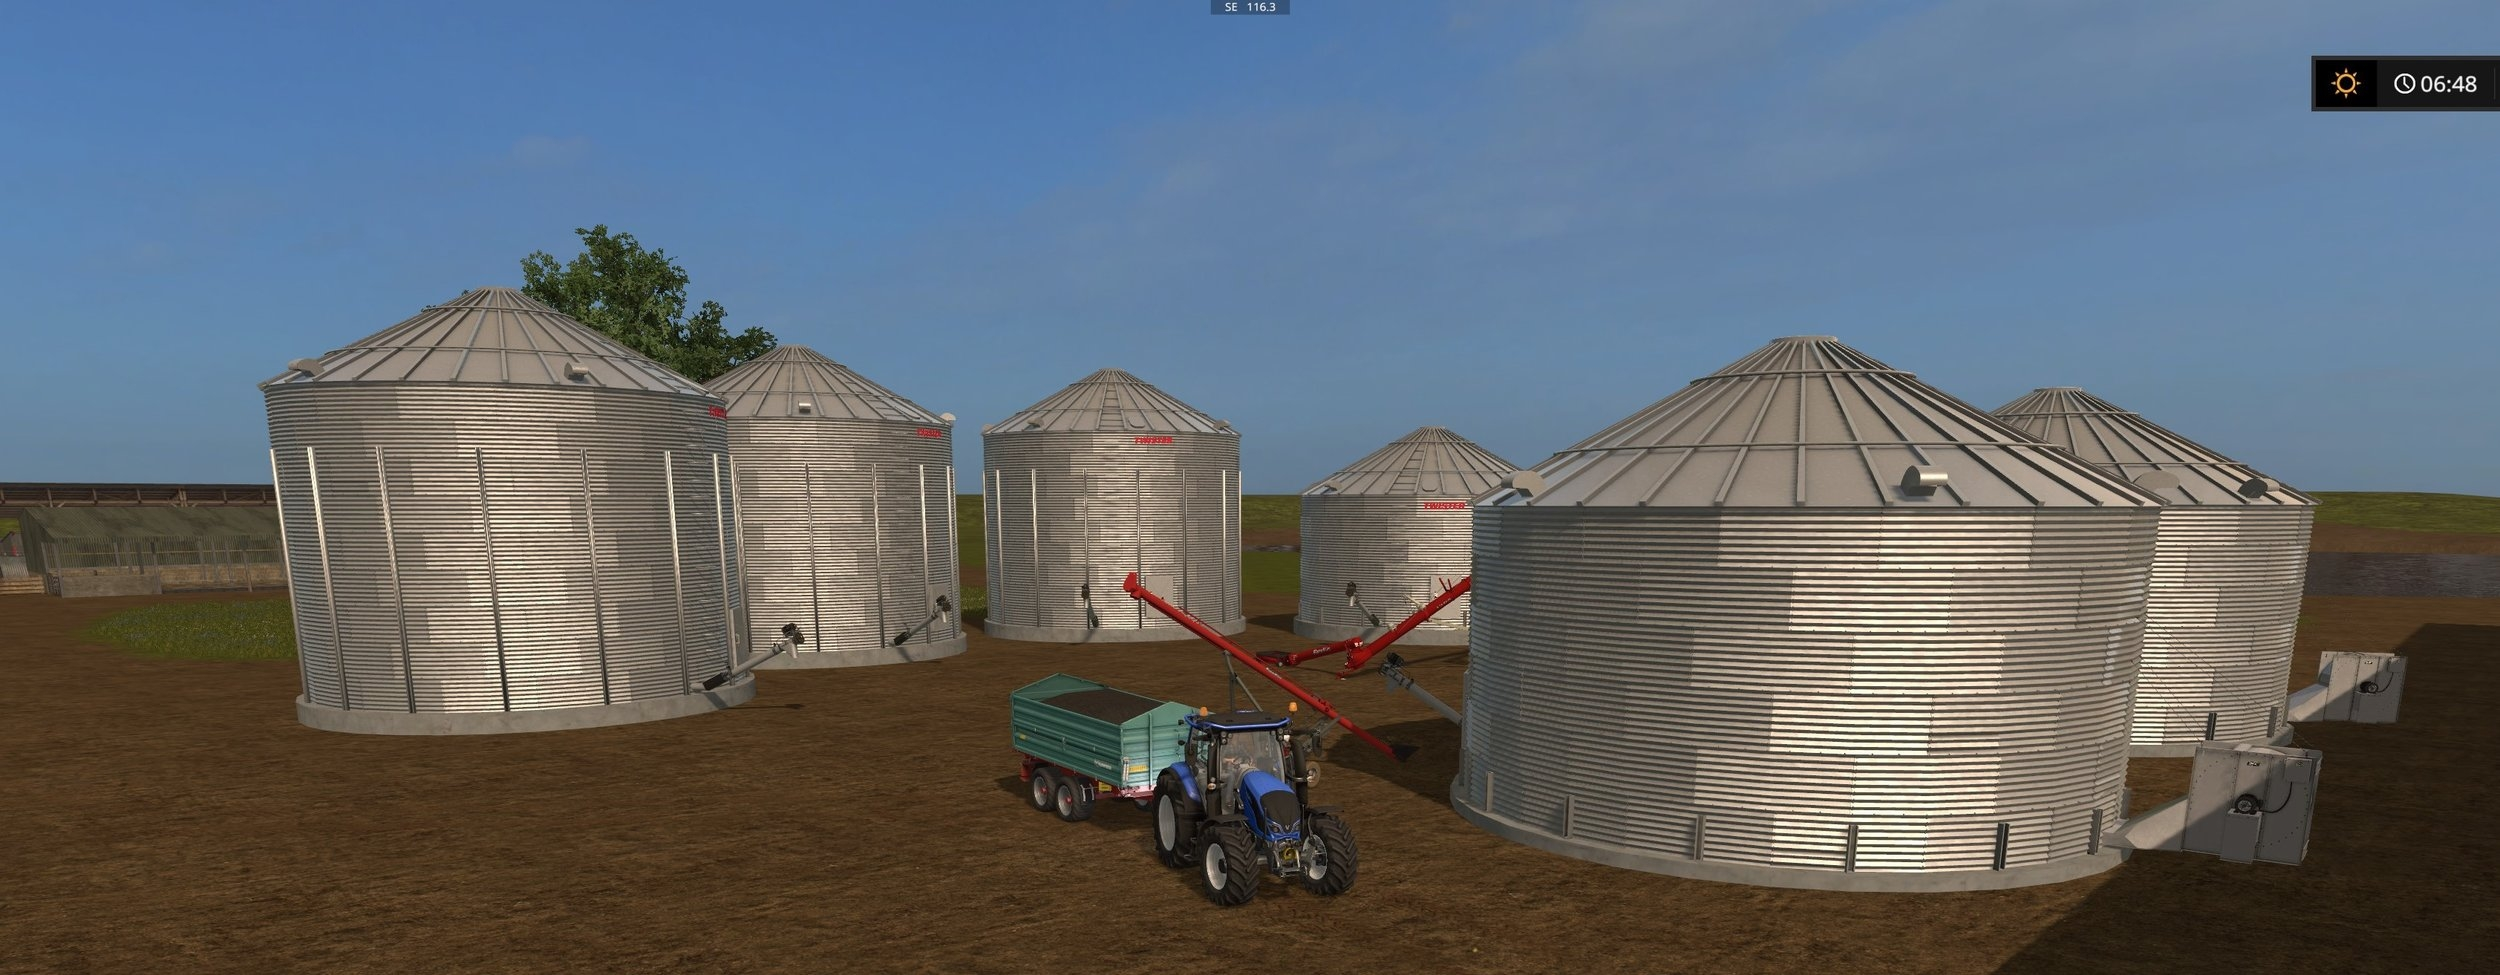 Twister silos and Farmking augers